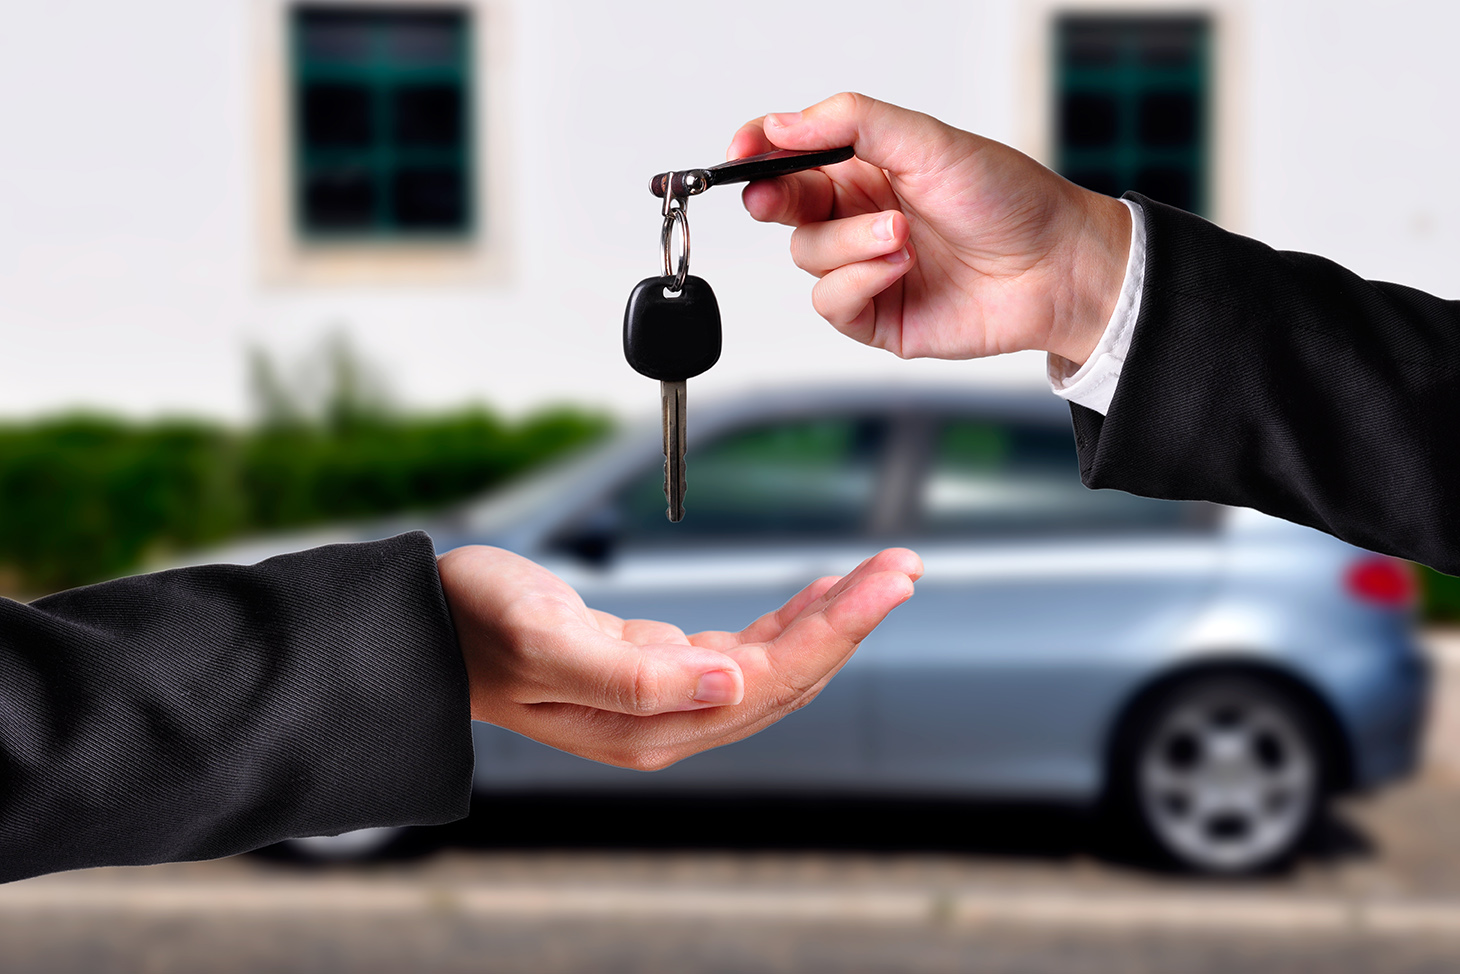 handing over the keys after i sell my vehicle